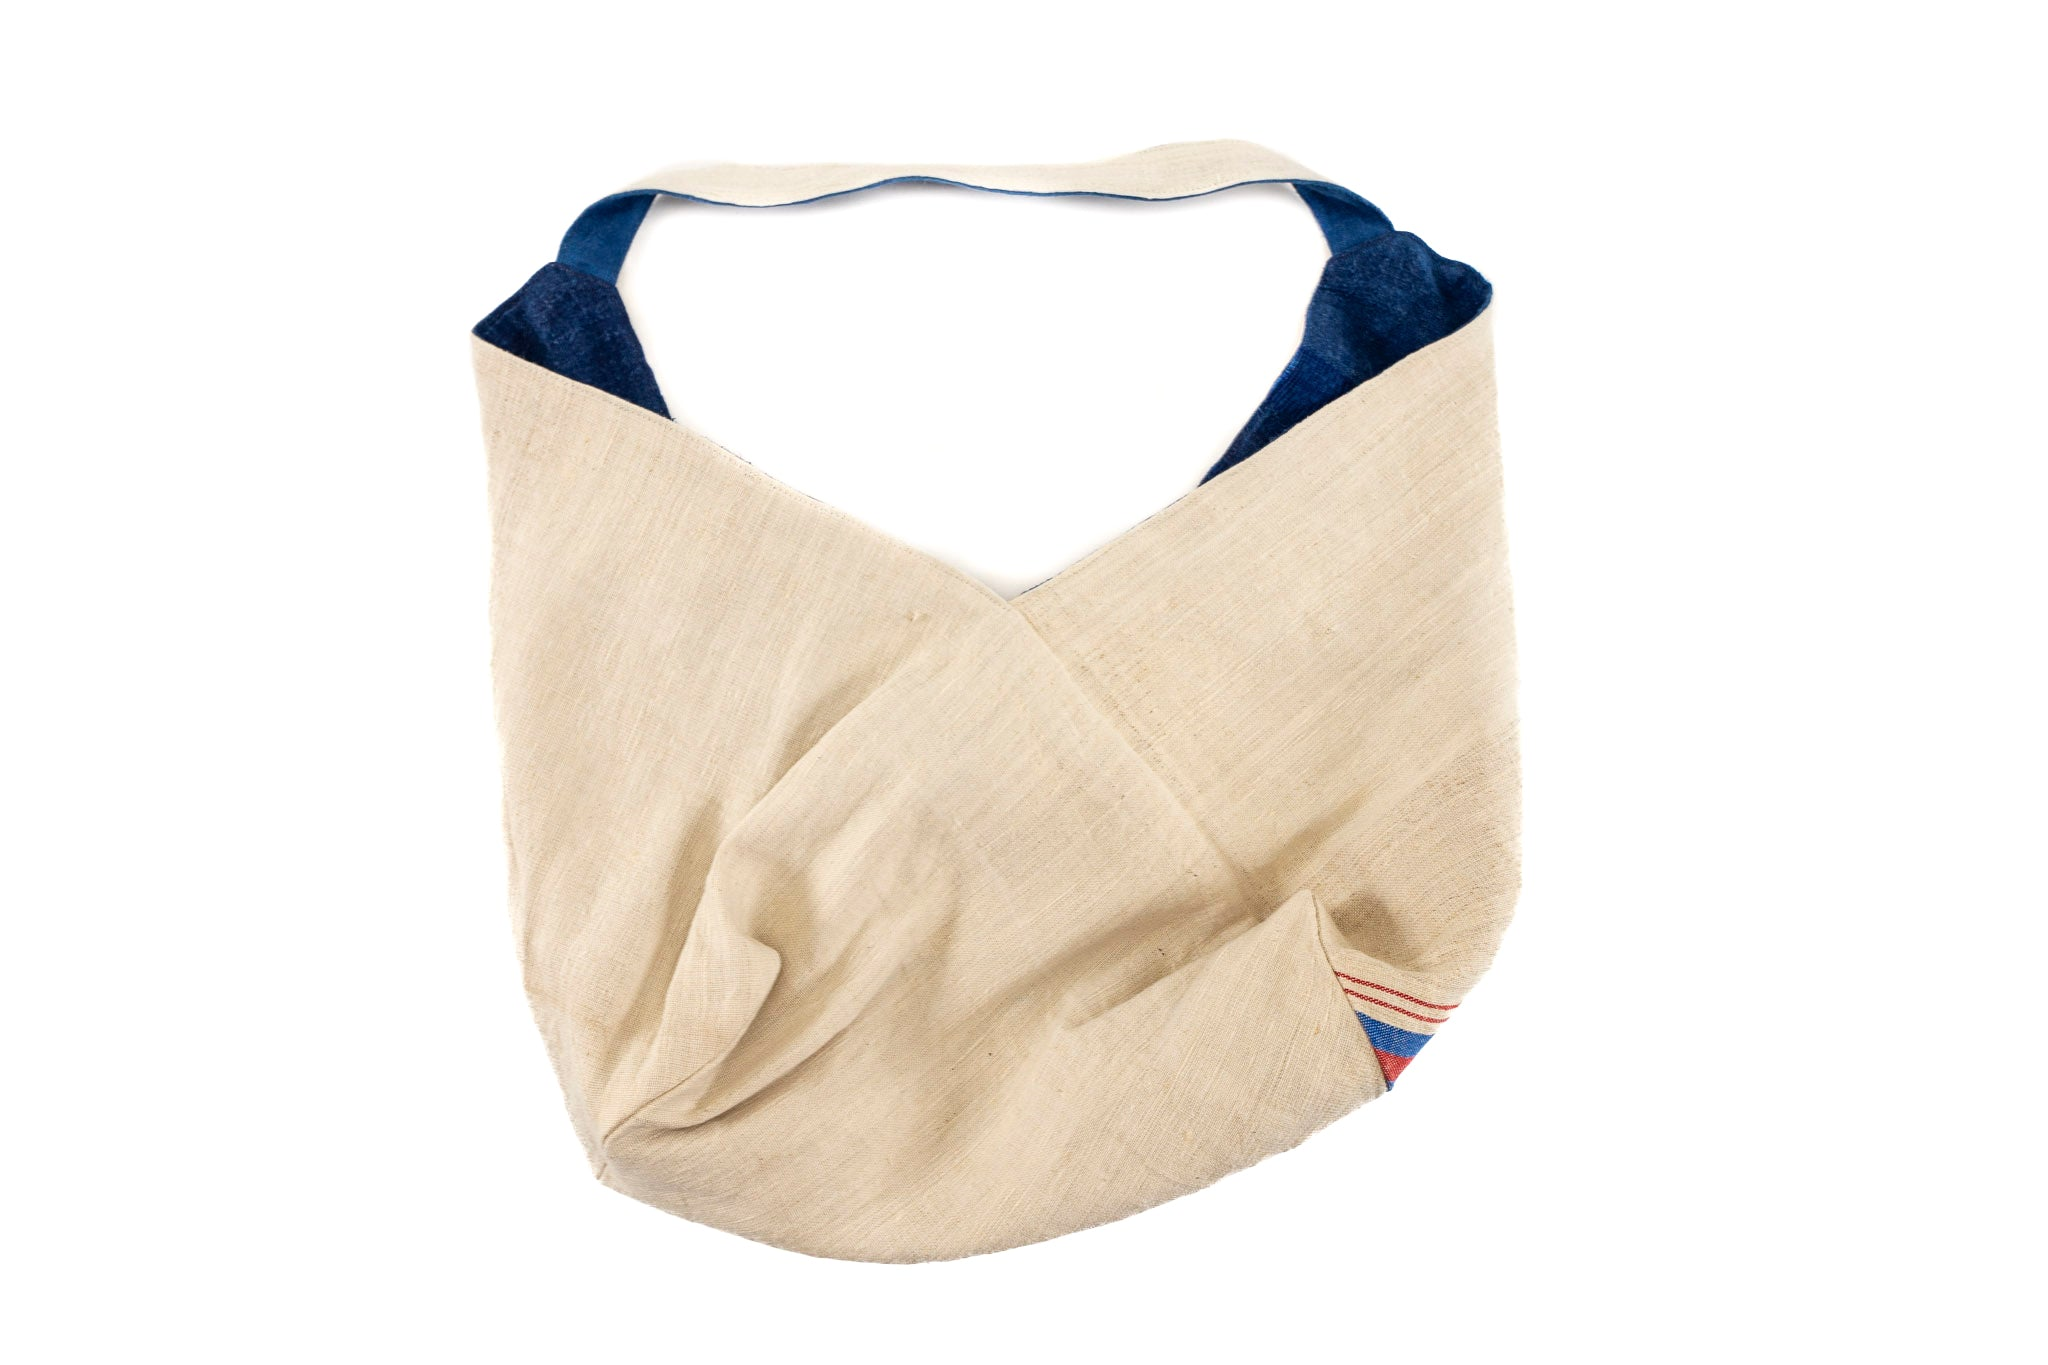 Bag: Handwoven antique Hungarian hemp